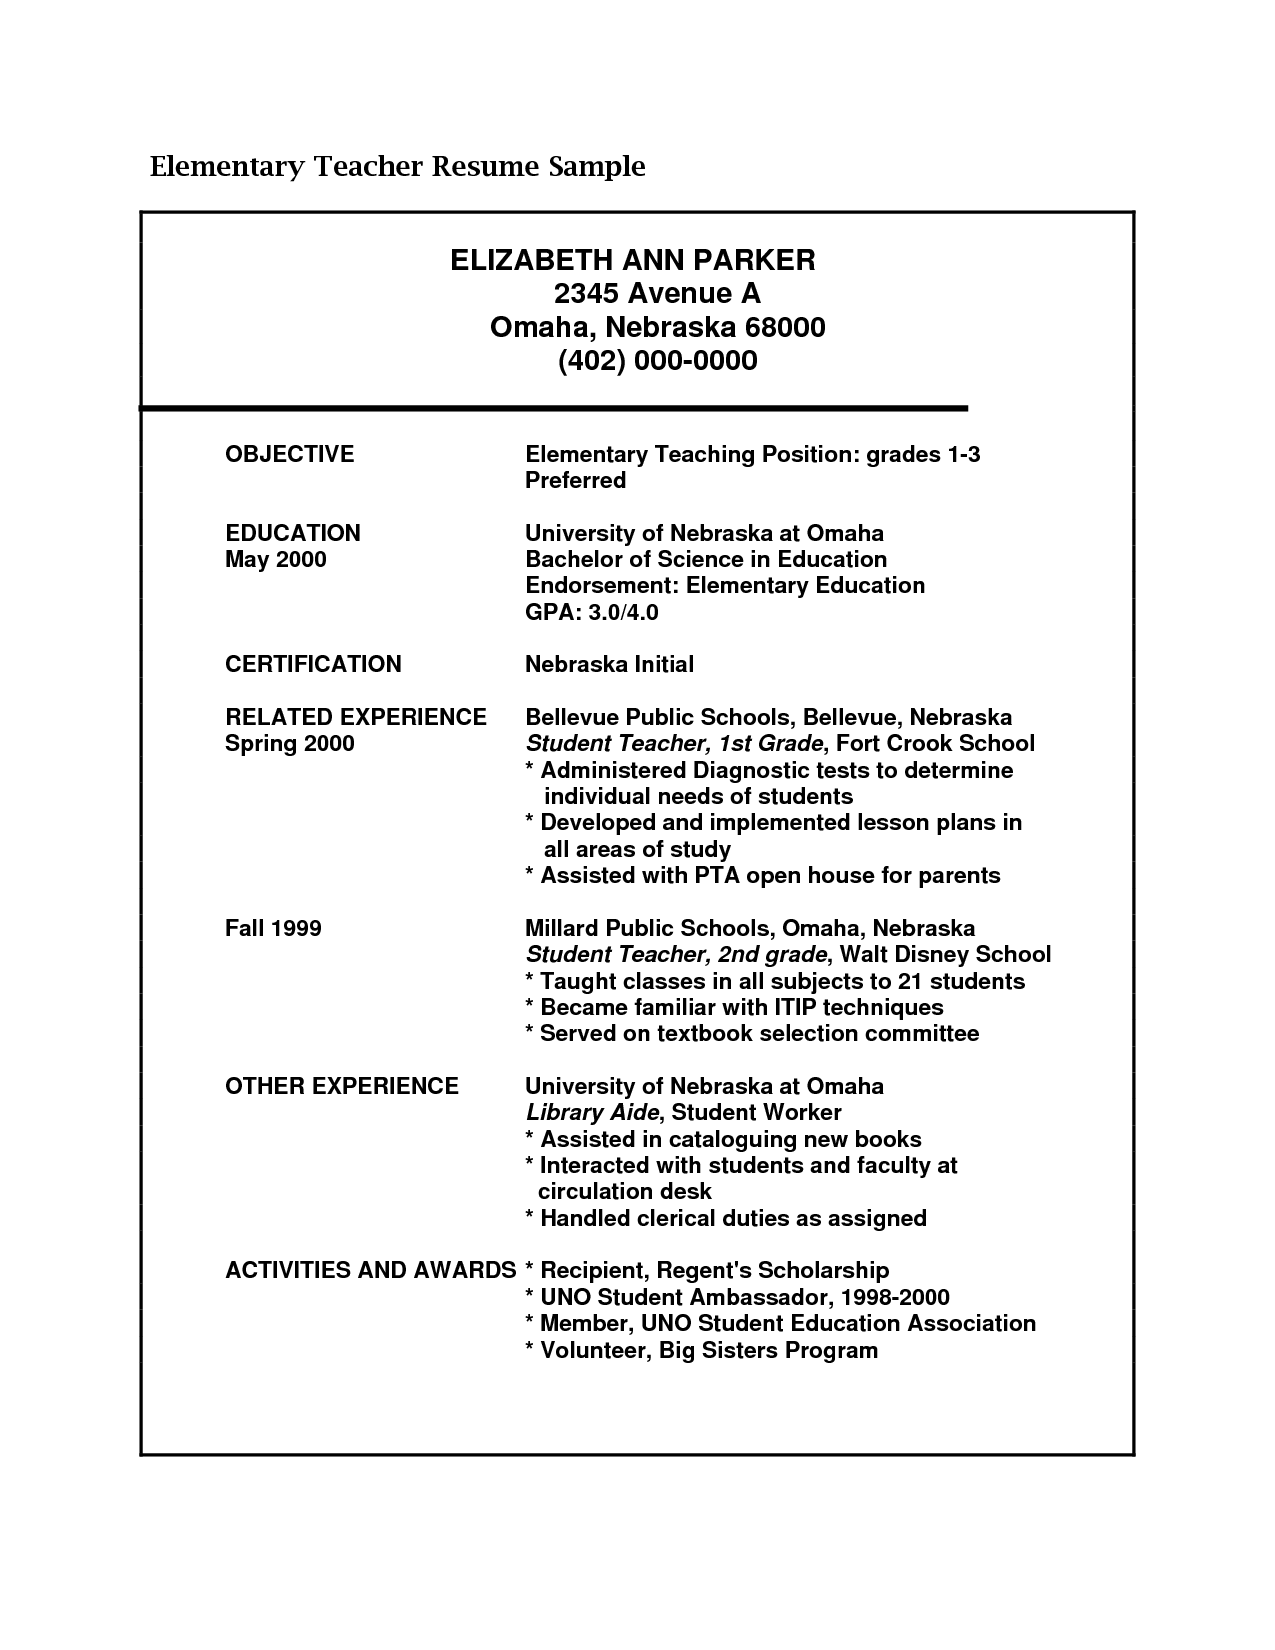 examples of elementary teacher resumes - Good Teacher Resume Examples